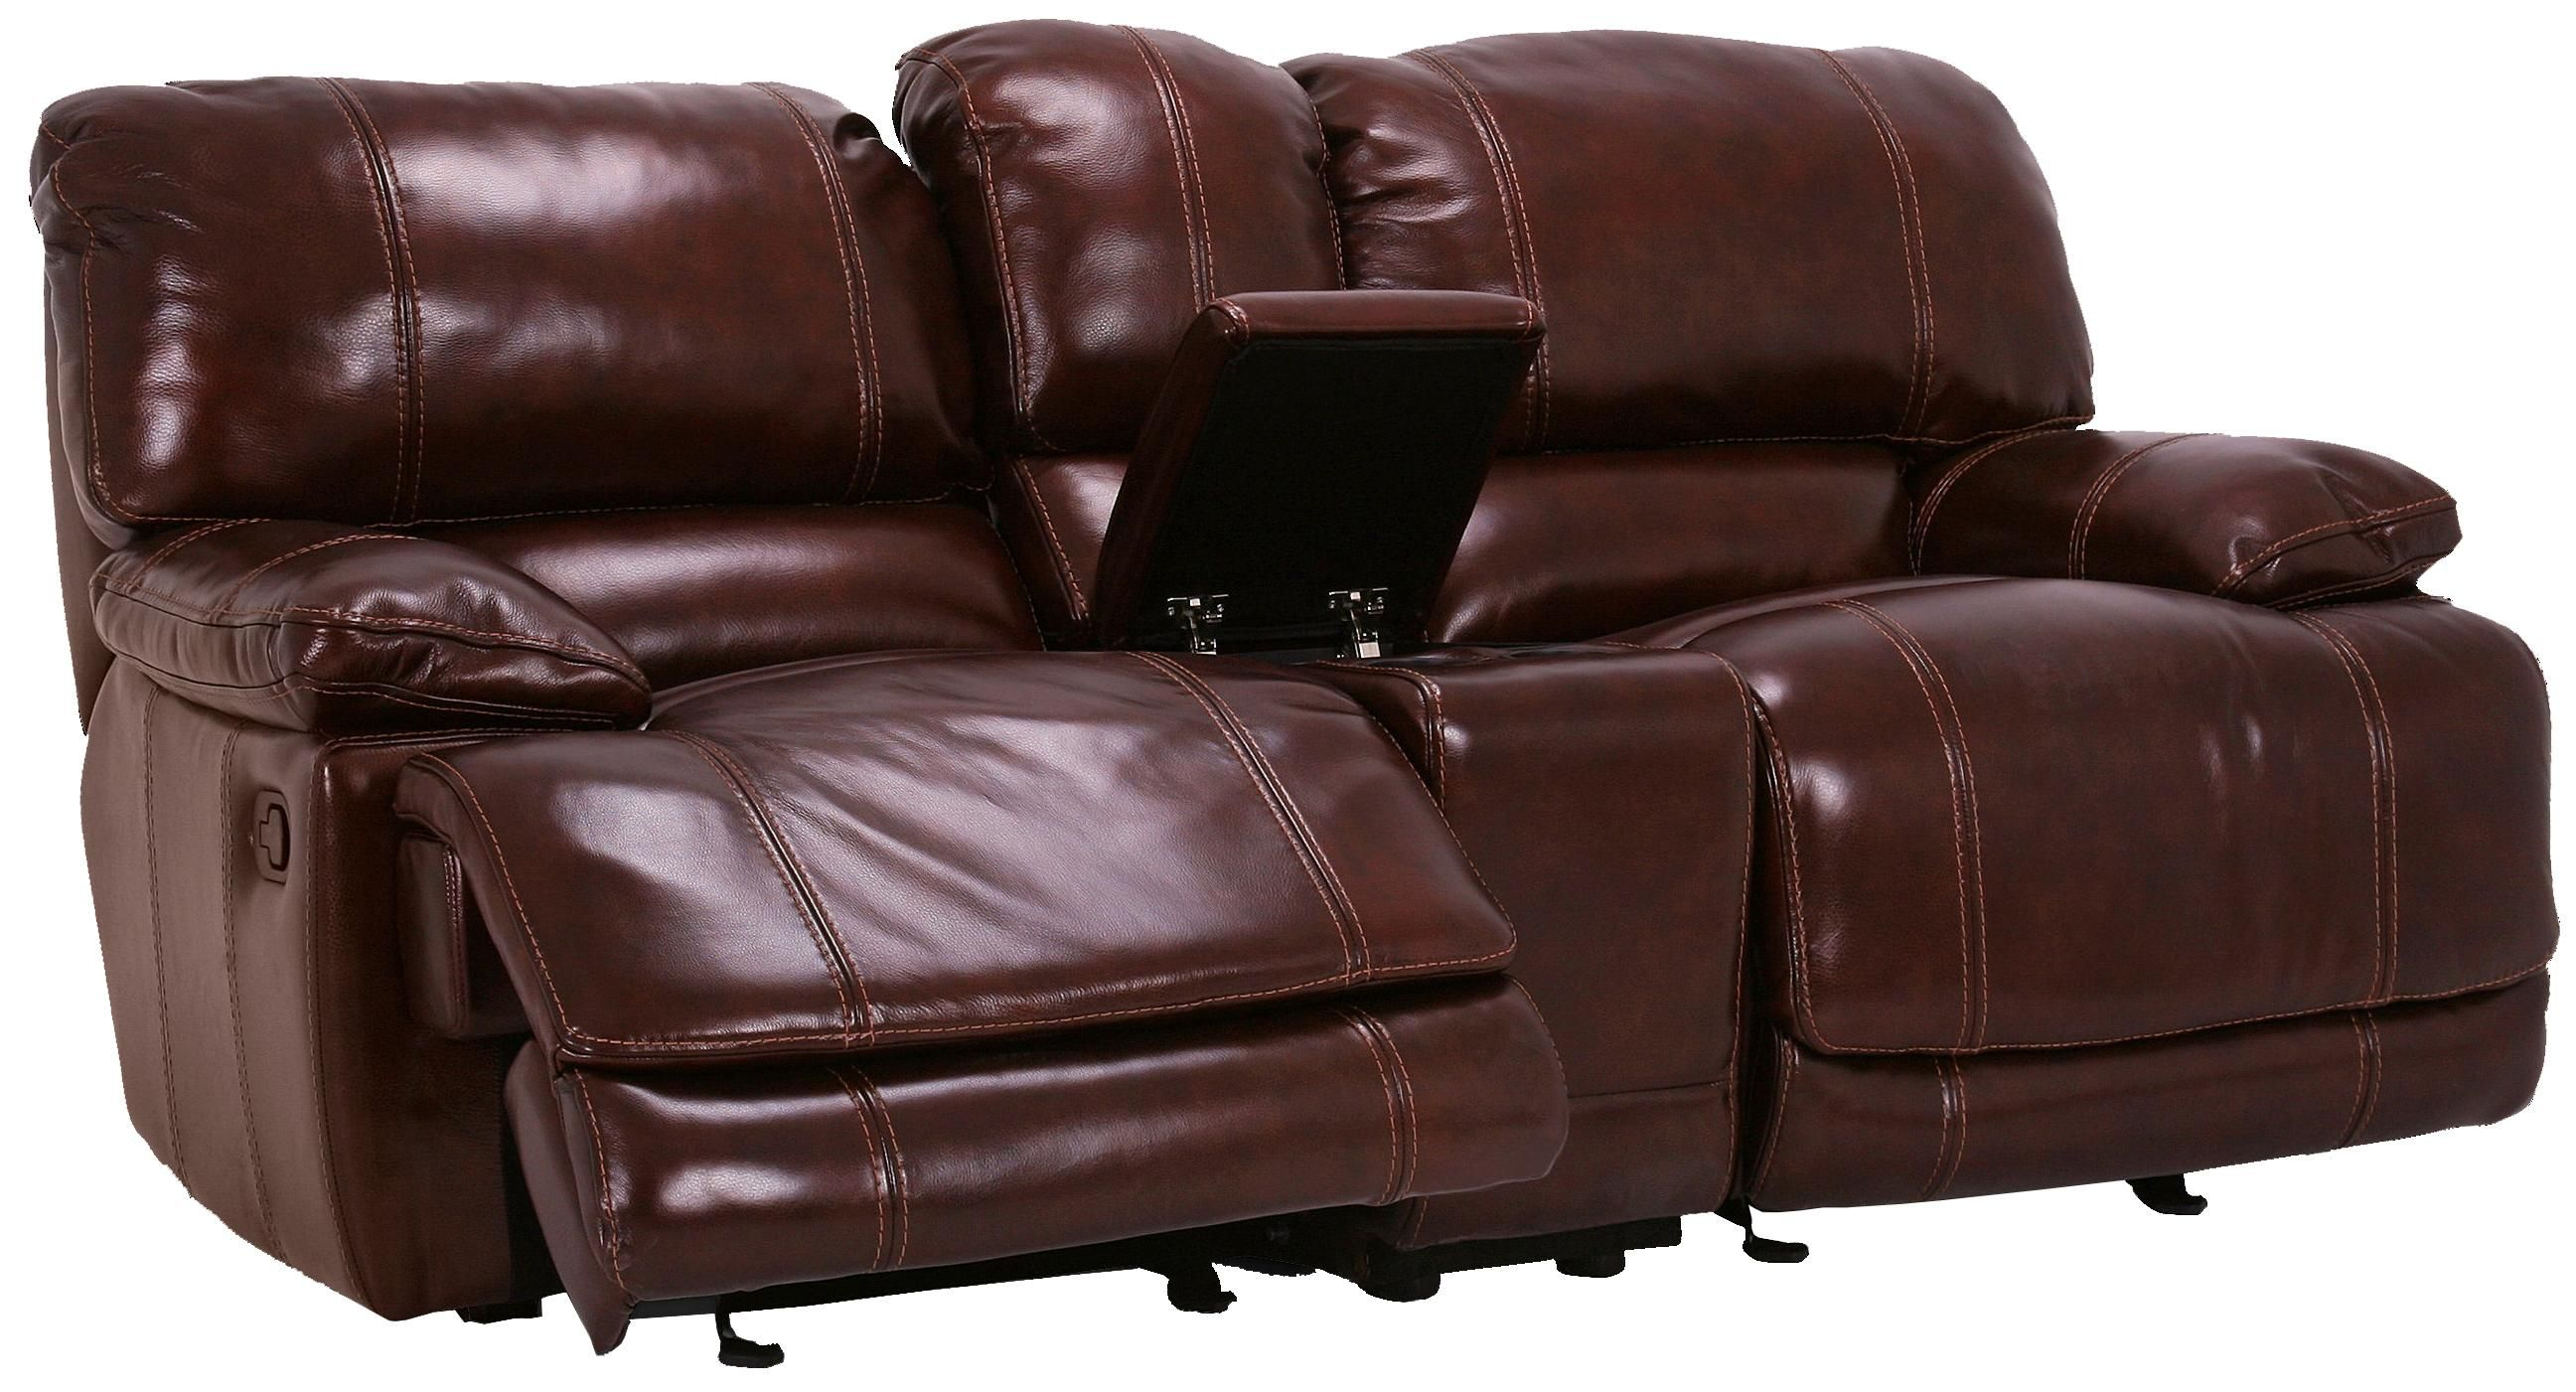 Flexsteel Furniture: Latitudes Belmont Collection featuring dual gliding reclining loveseat with console, reclining loveseat, reclining sofa and glider recliner. Available with power or manual recline. #interiordesign #leather #sofa